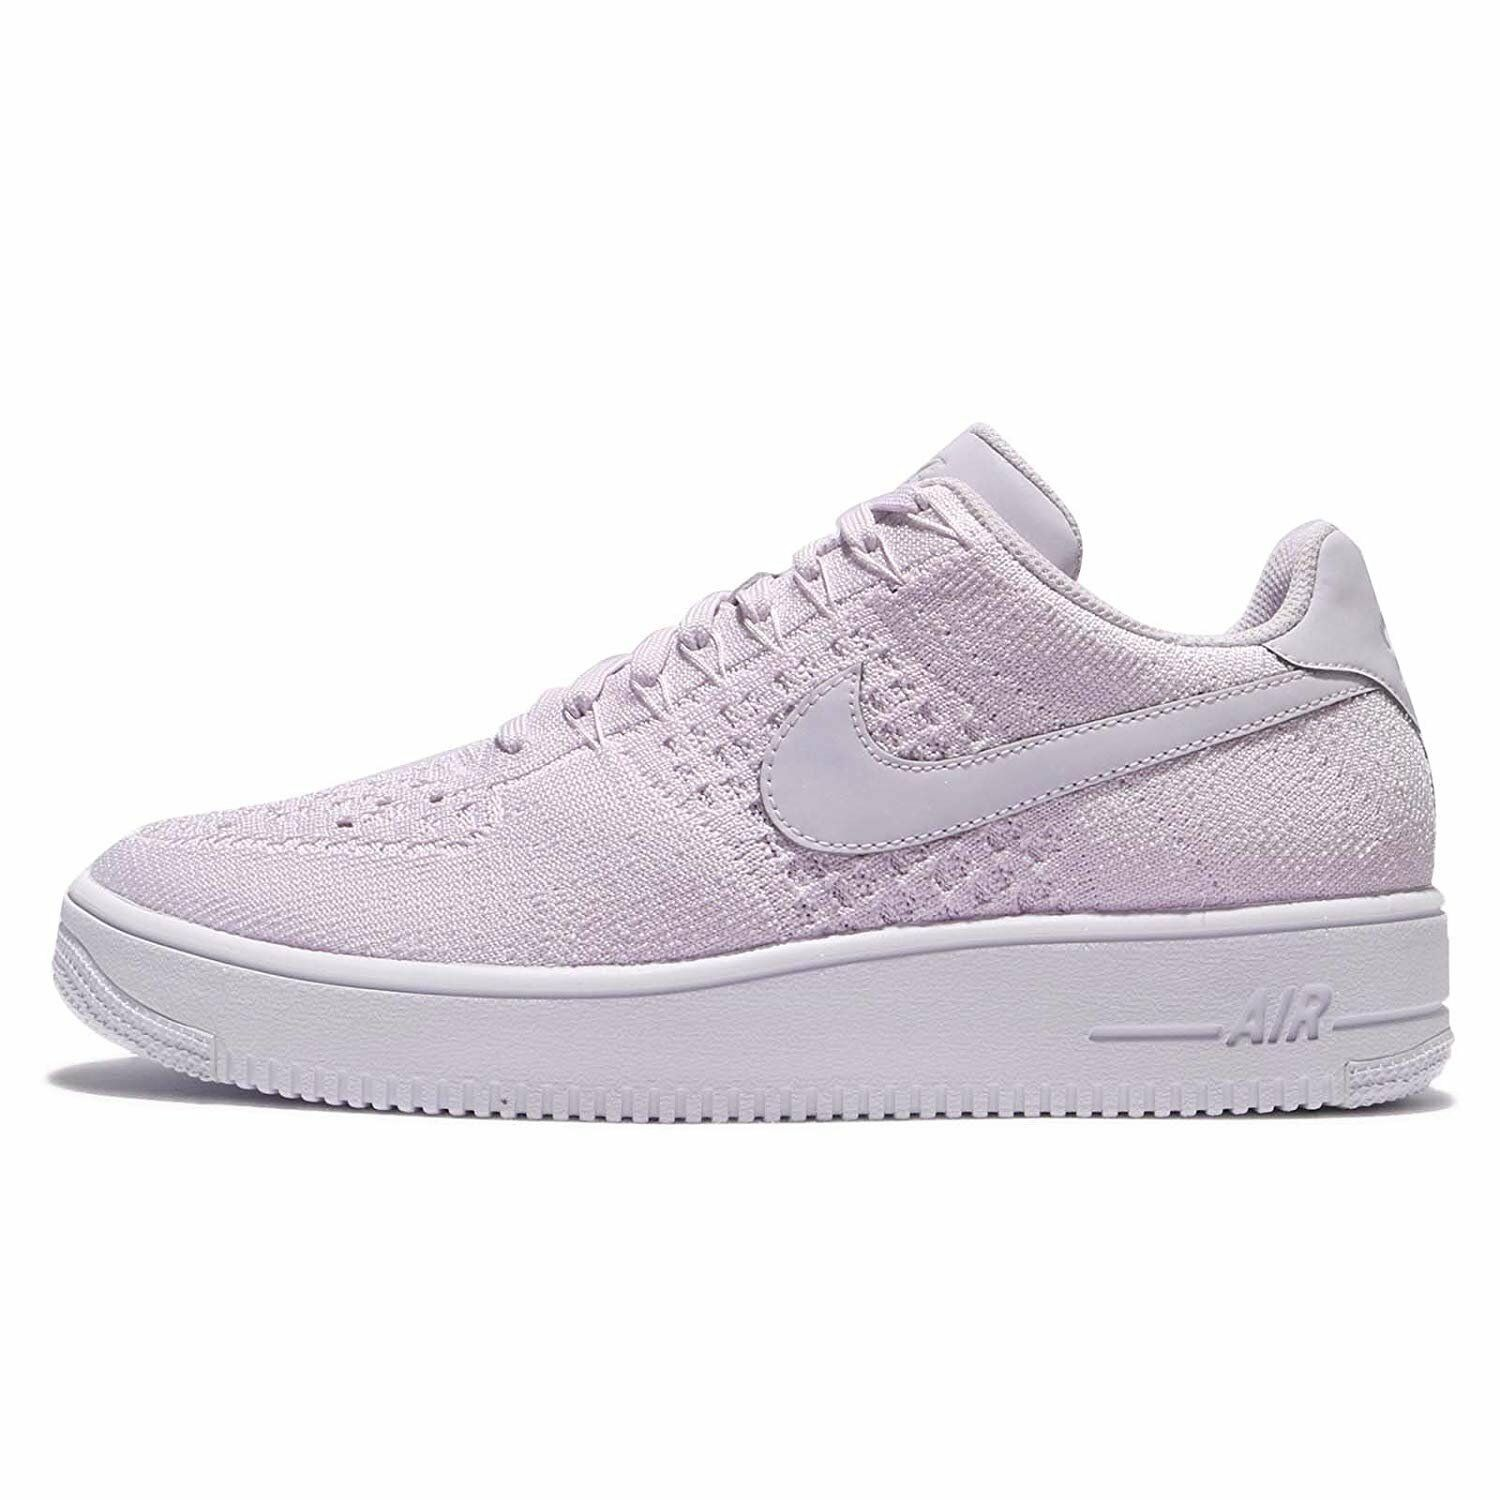 Nike Men's AF1 Ultra Flyknit Low PRM Basketball shoes